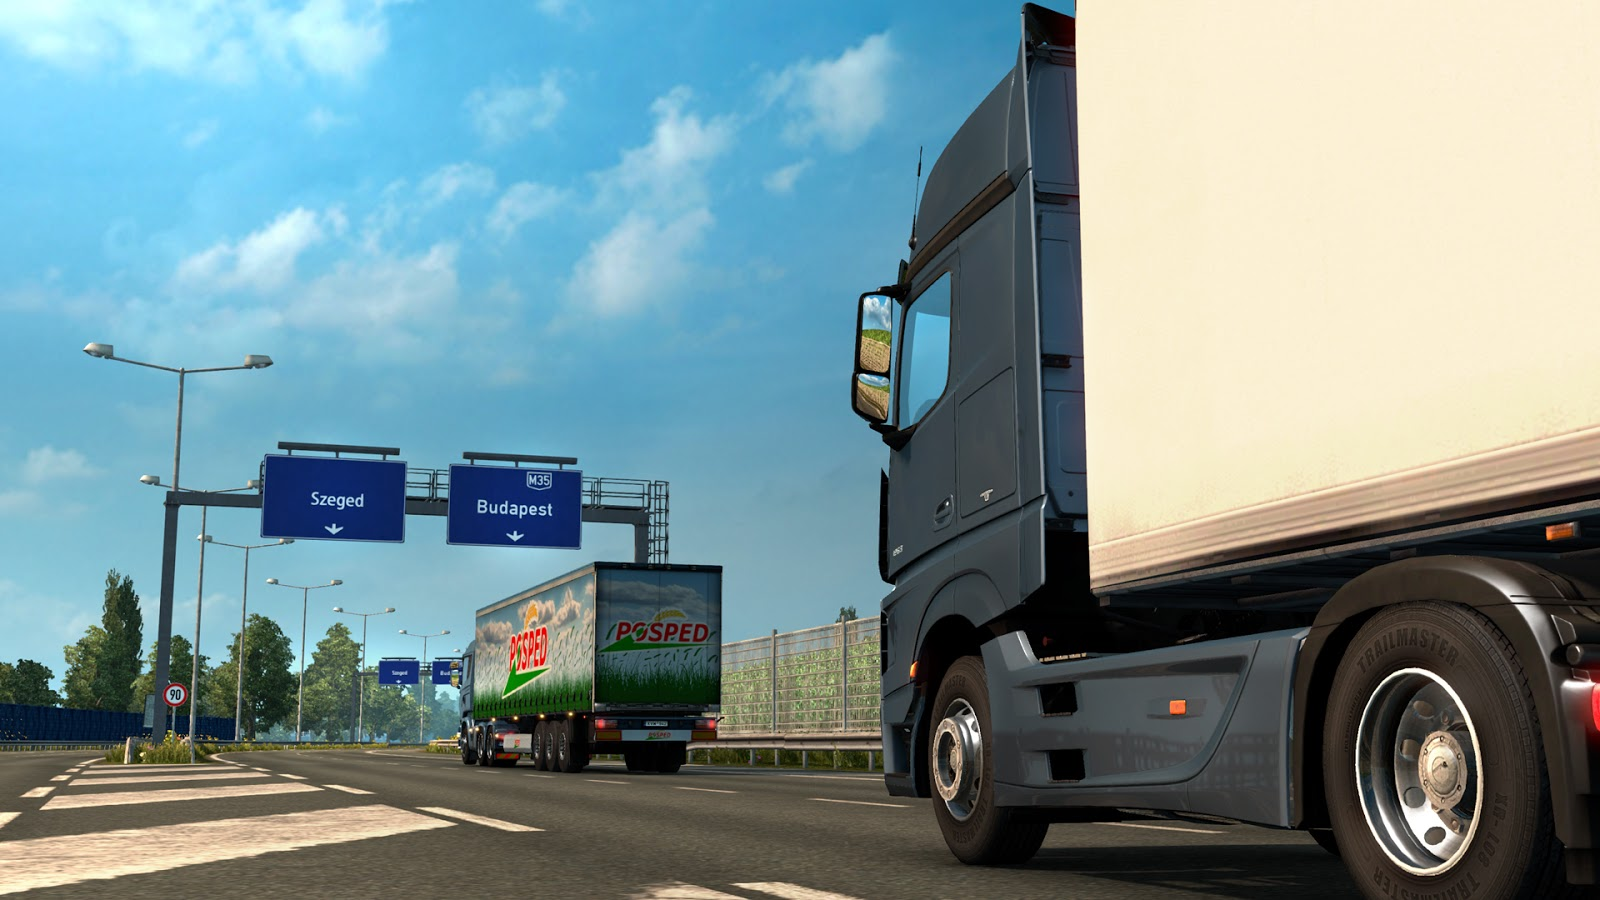 euro truck simulator 2 mapa portugal e espanha download SCS Software's blog: Territory expansion in upcoming ETS2 Update 1.19 euro truck simulator 2 mapa portugal e espanha download